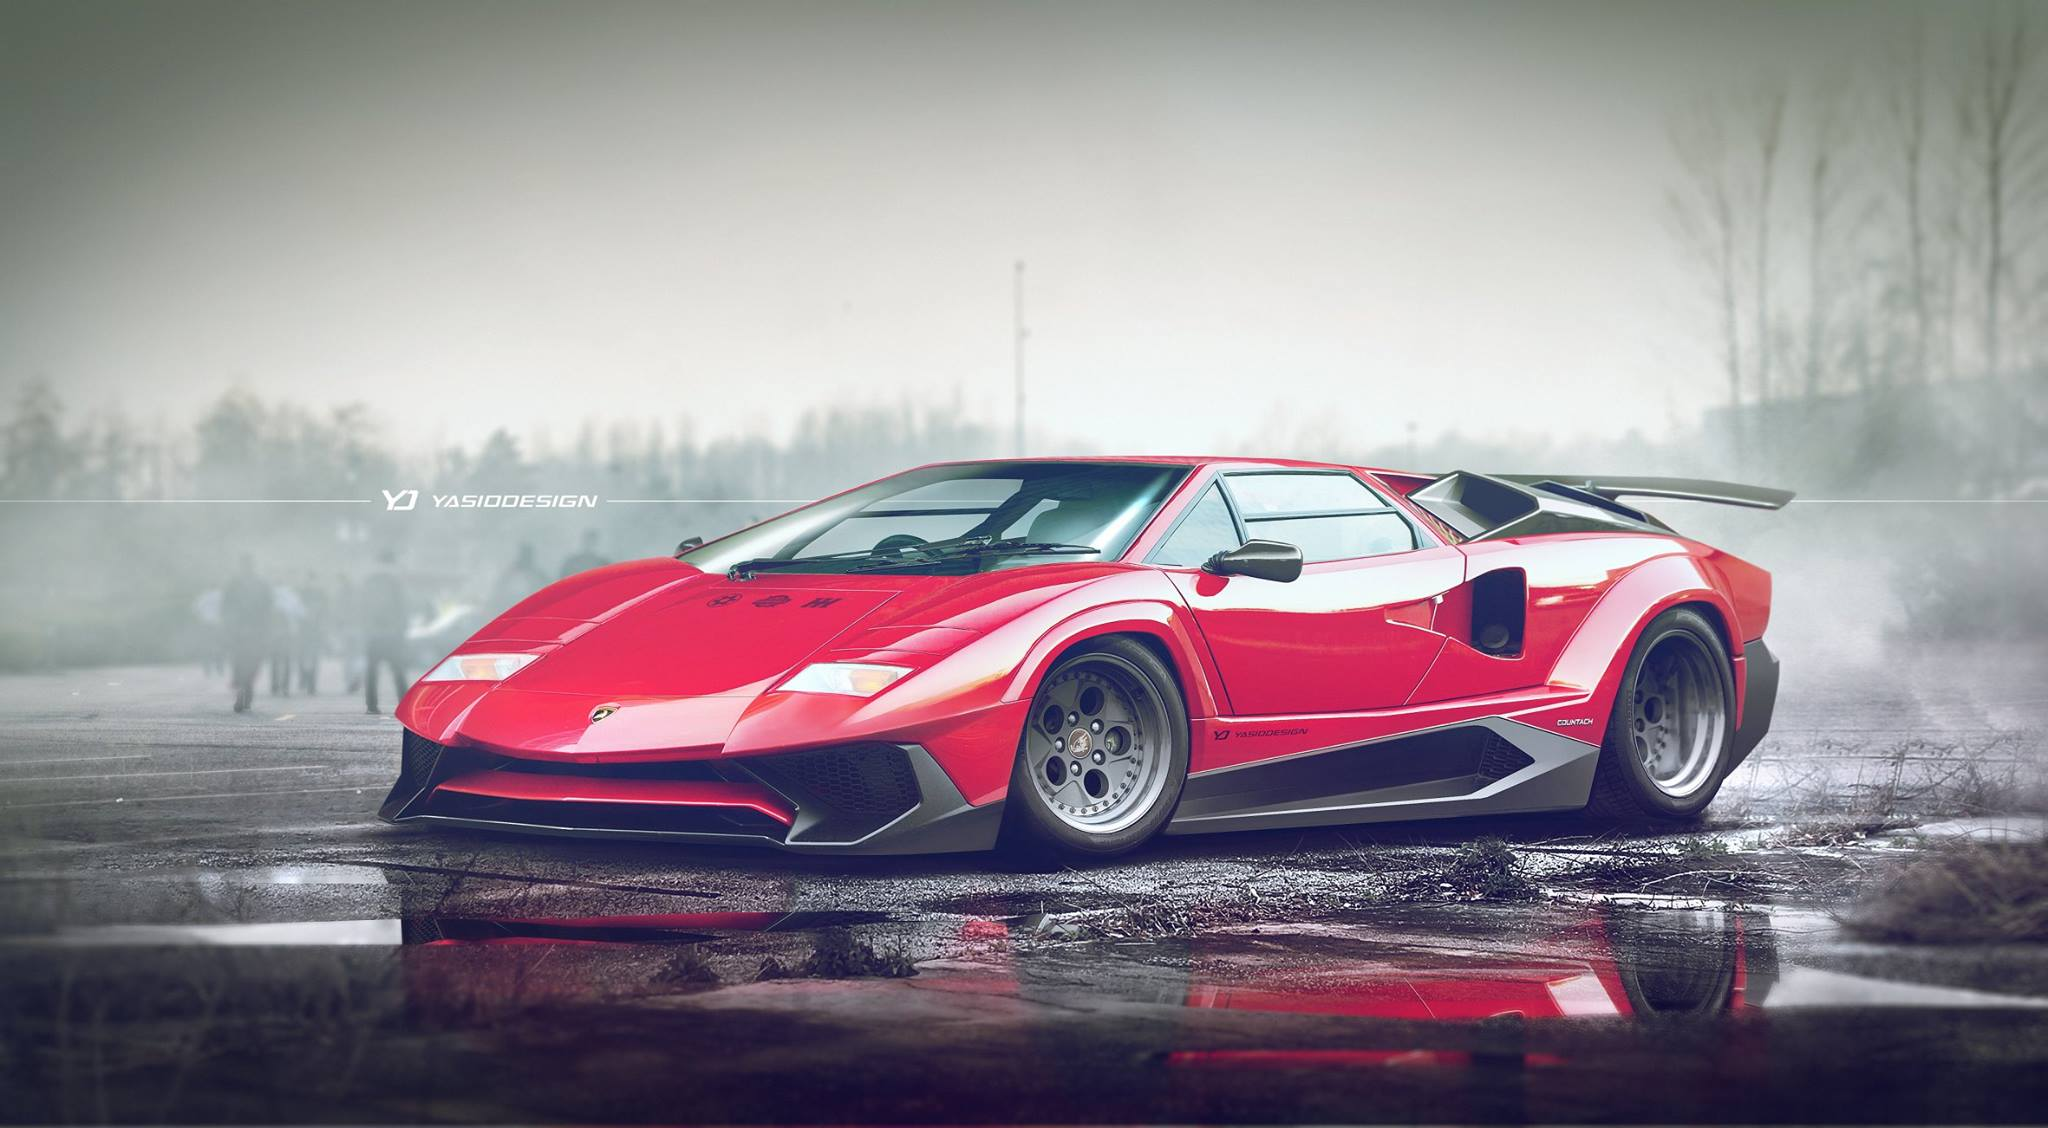 Lamborghini Countach Gets Aventador Sv Makeover In Mind Blowing Mashup Autoevolution